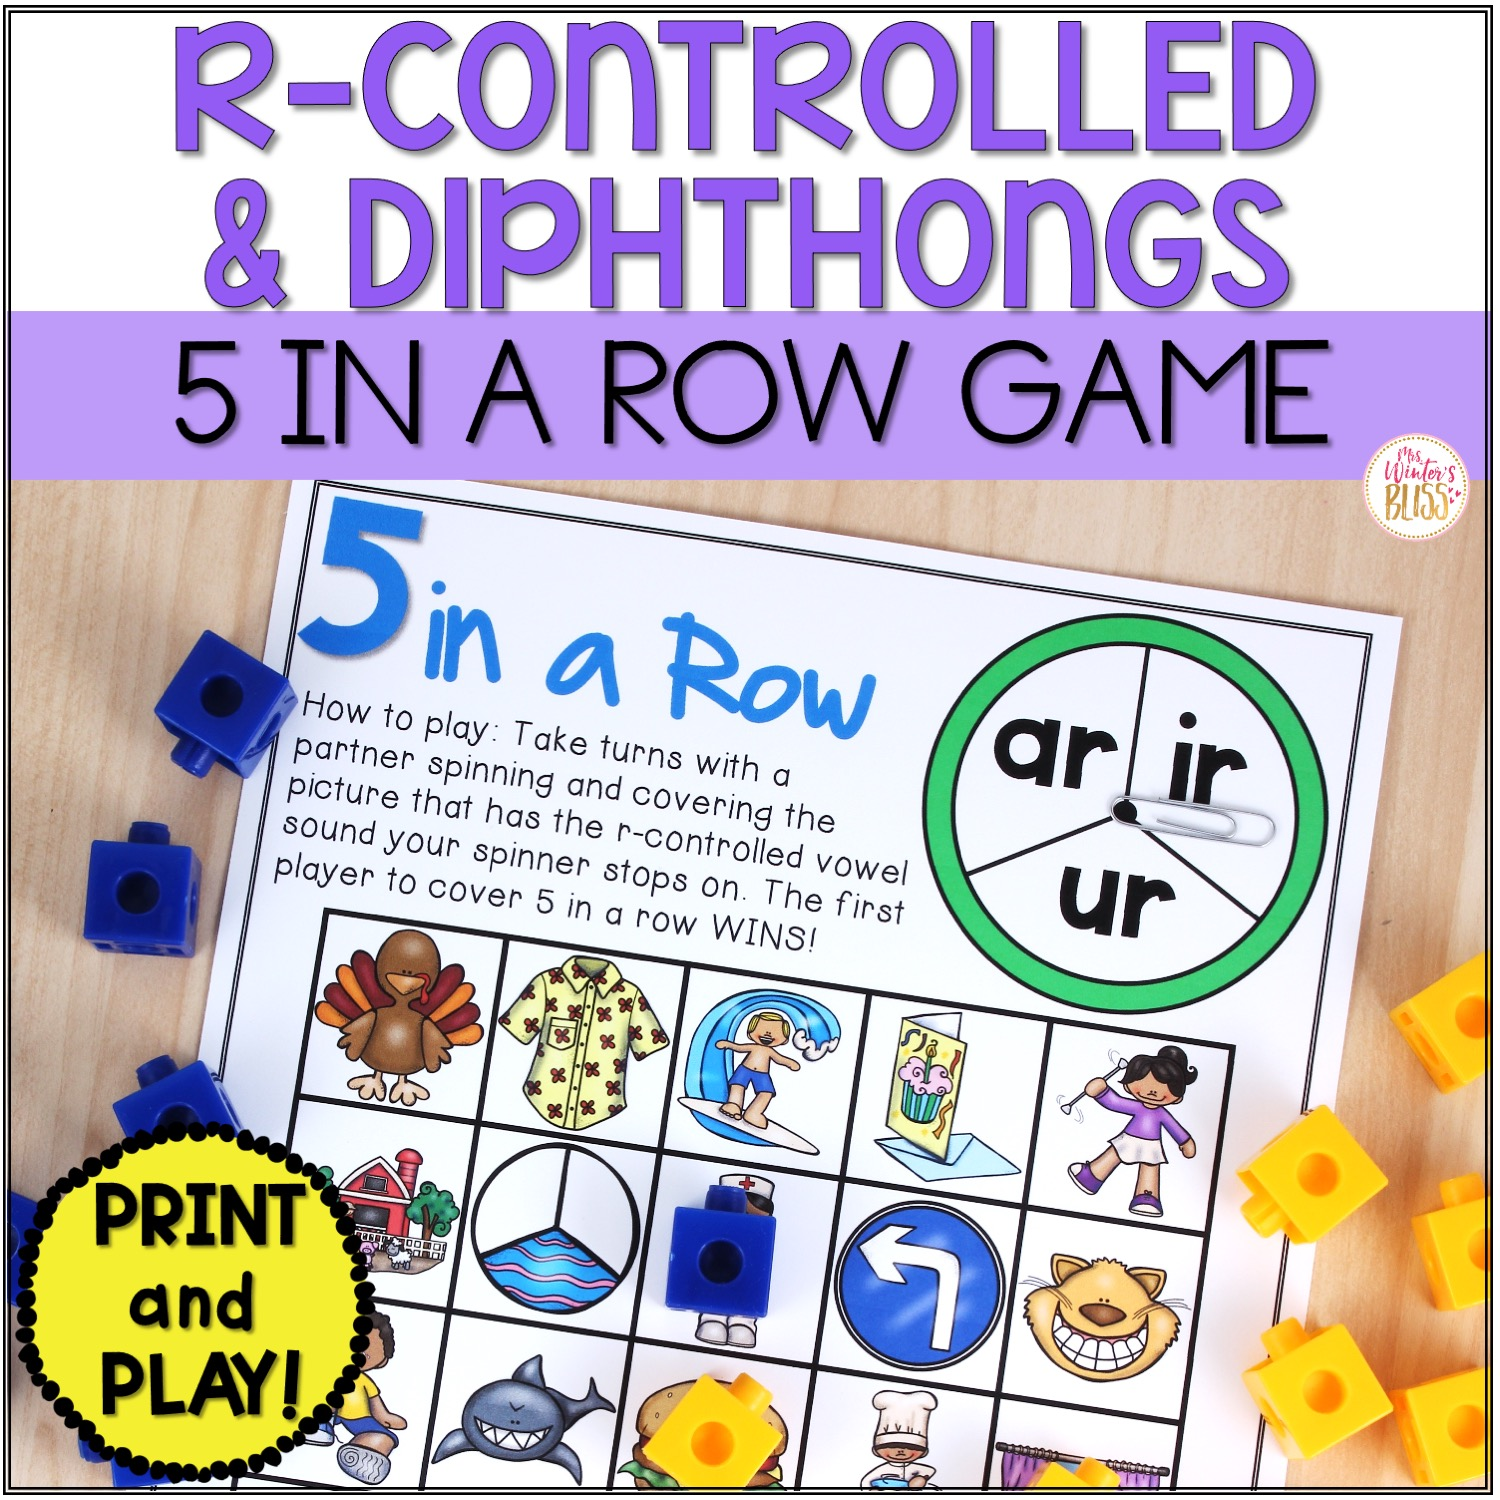 Phonemic Awareness Activities - R Controlled Vowels \u0026 Diphthongs Worksheet  Games - Mrs. Winter's Bliss [ 1500 x 1500 Pixel ]